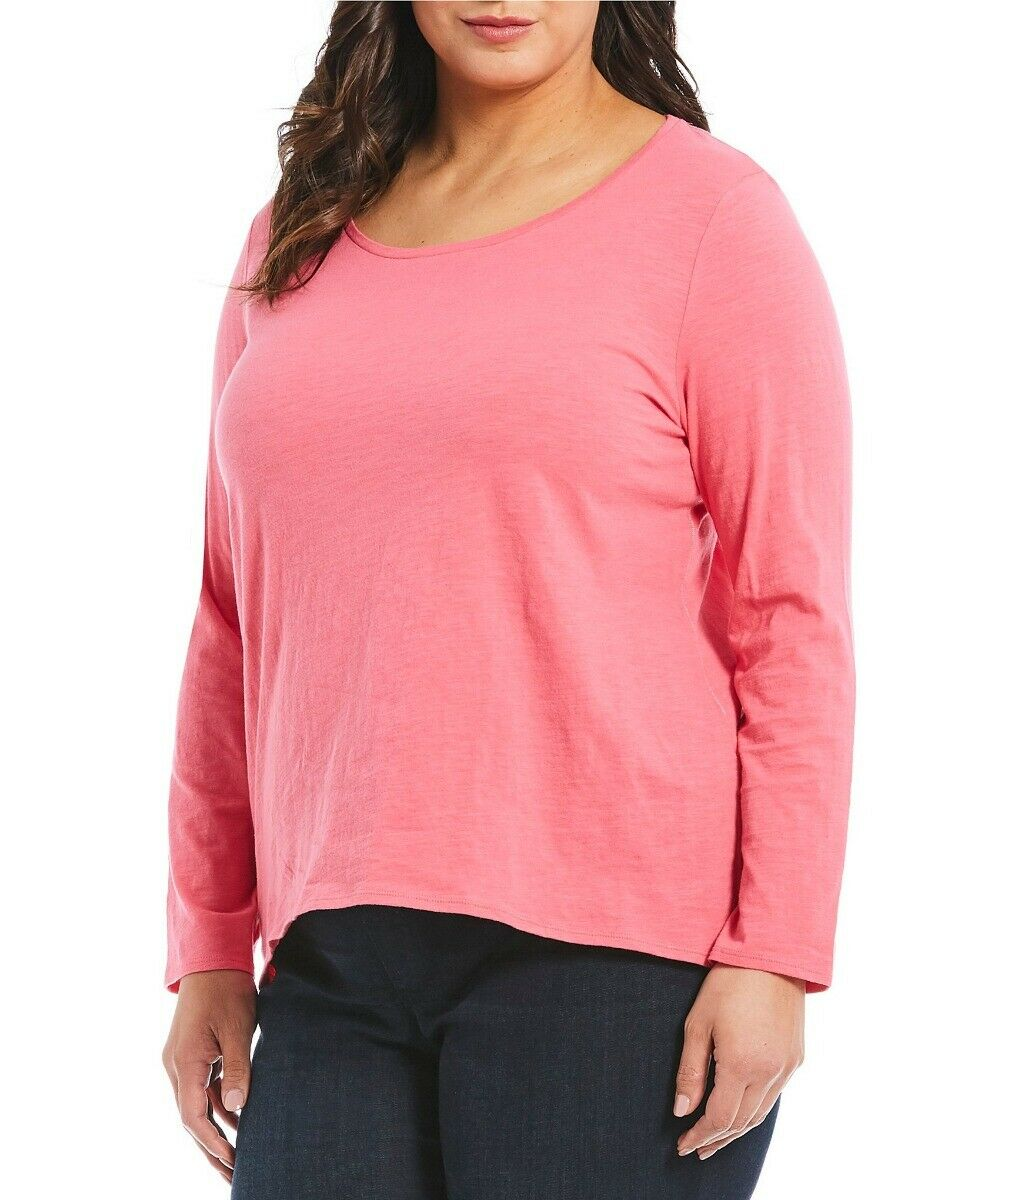 Eileen Fisher Hot Rosa Slubby Organic  Cotton Jersey Wide Neck Top sz 2X NWT